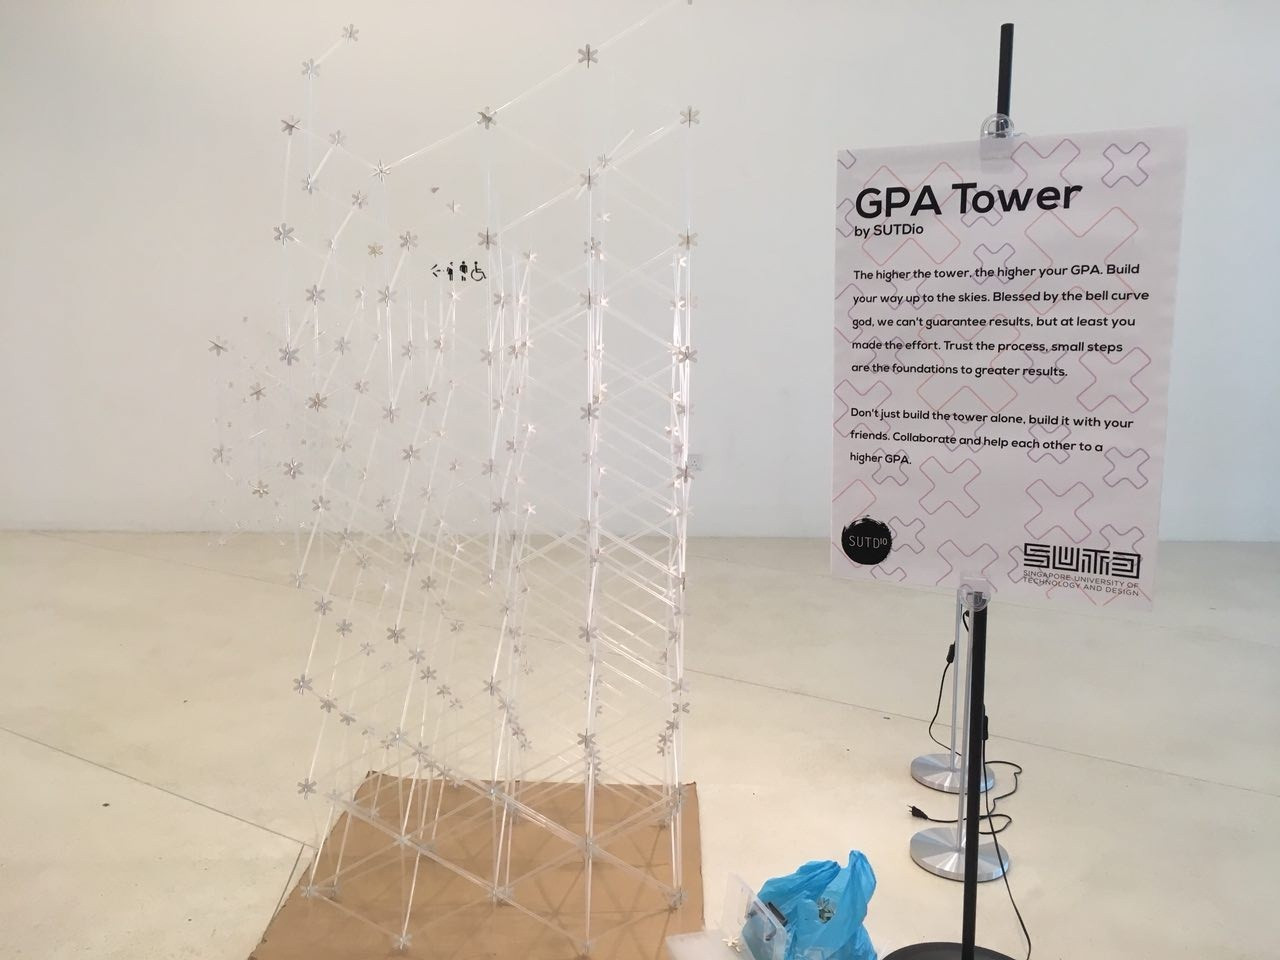 An interactive exhibit. The GPA tower asks visitors to collaborate with each other to build a higher GPA.